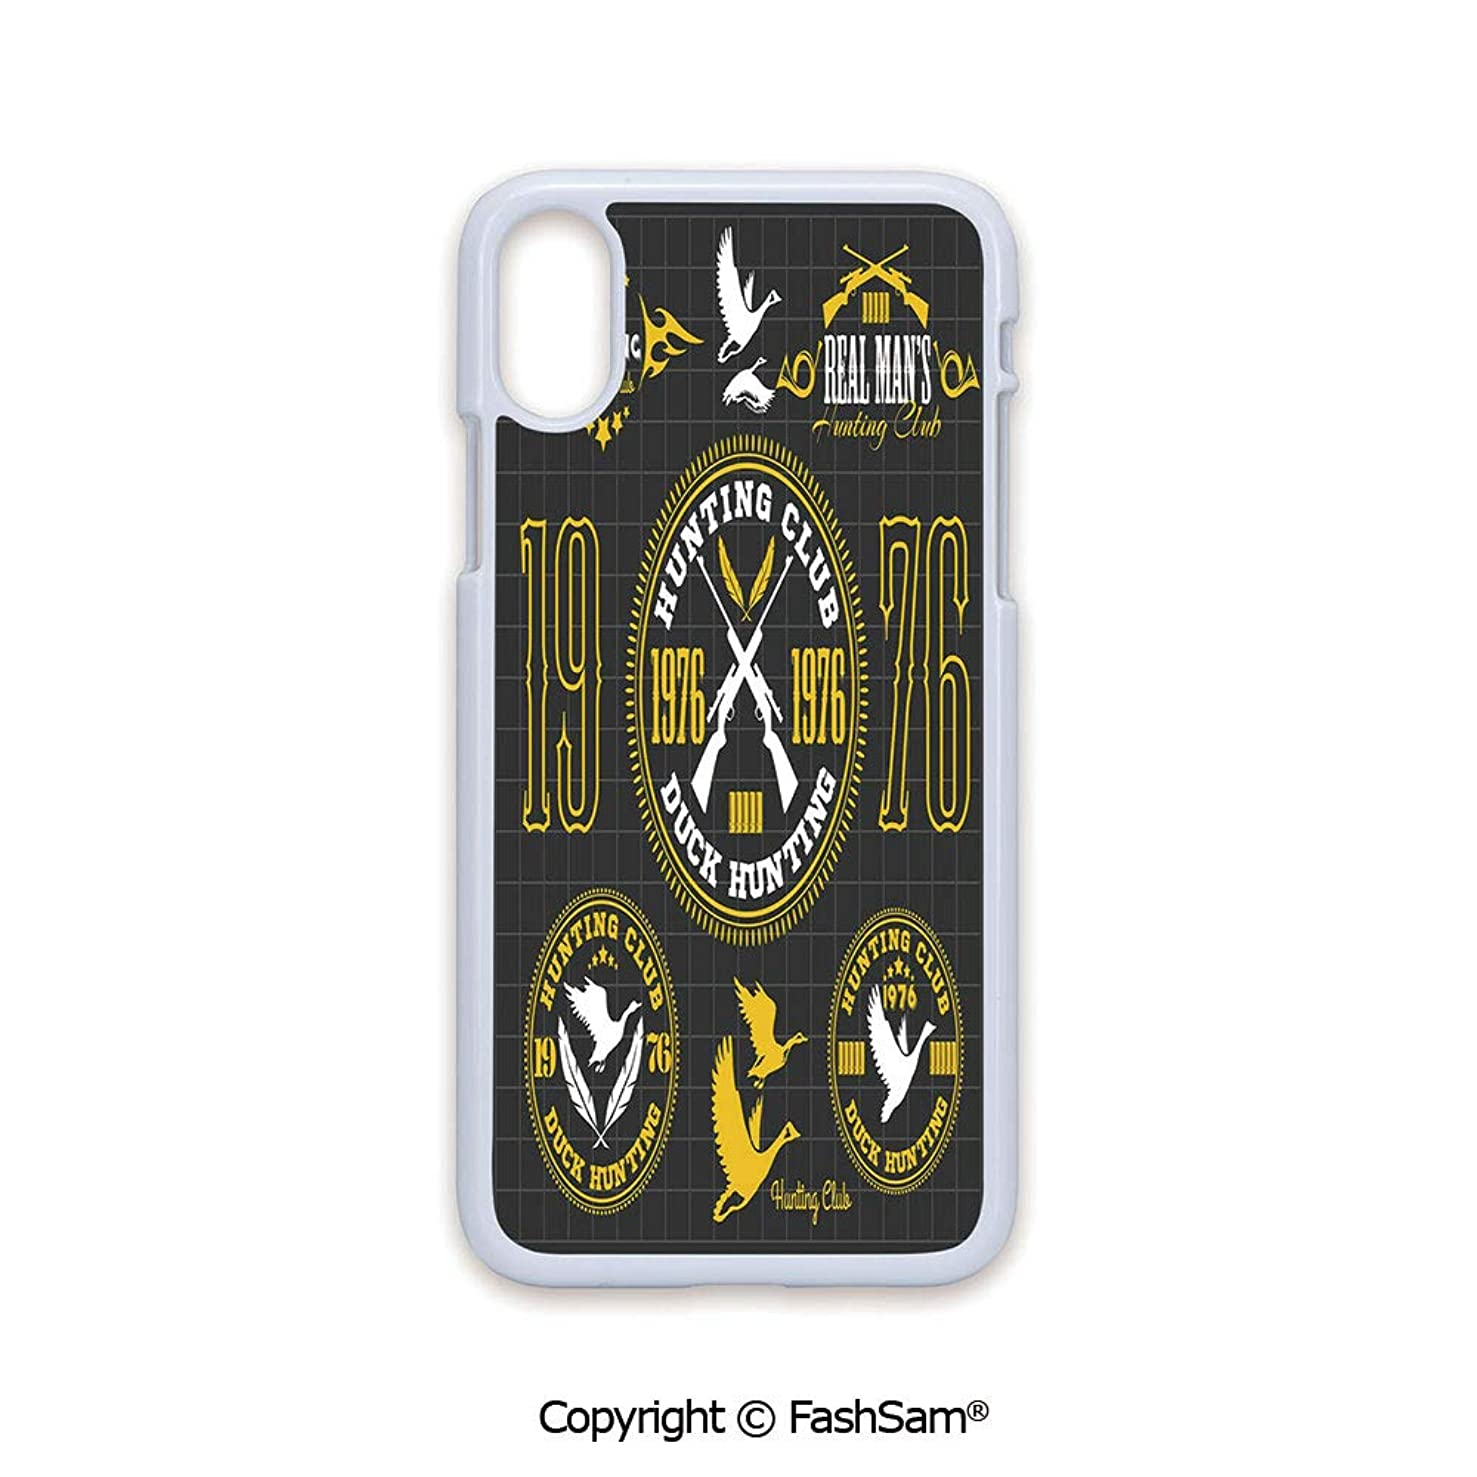 Plastic Rigid Mobile Phone case Compatible with iPhone X Black Edge Vintage Club Emblem from 1976 Hobby of Duck Hunting Themed Labels 2D Print Hard Plastic Phone Case